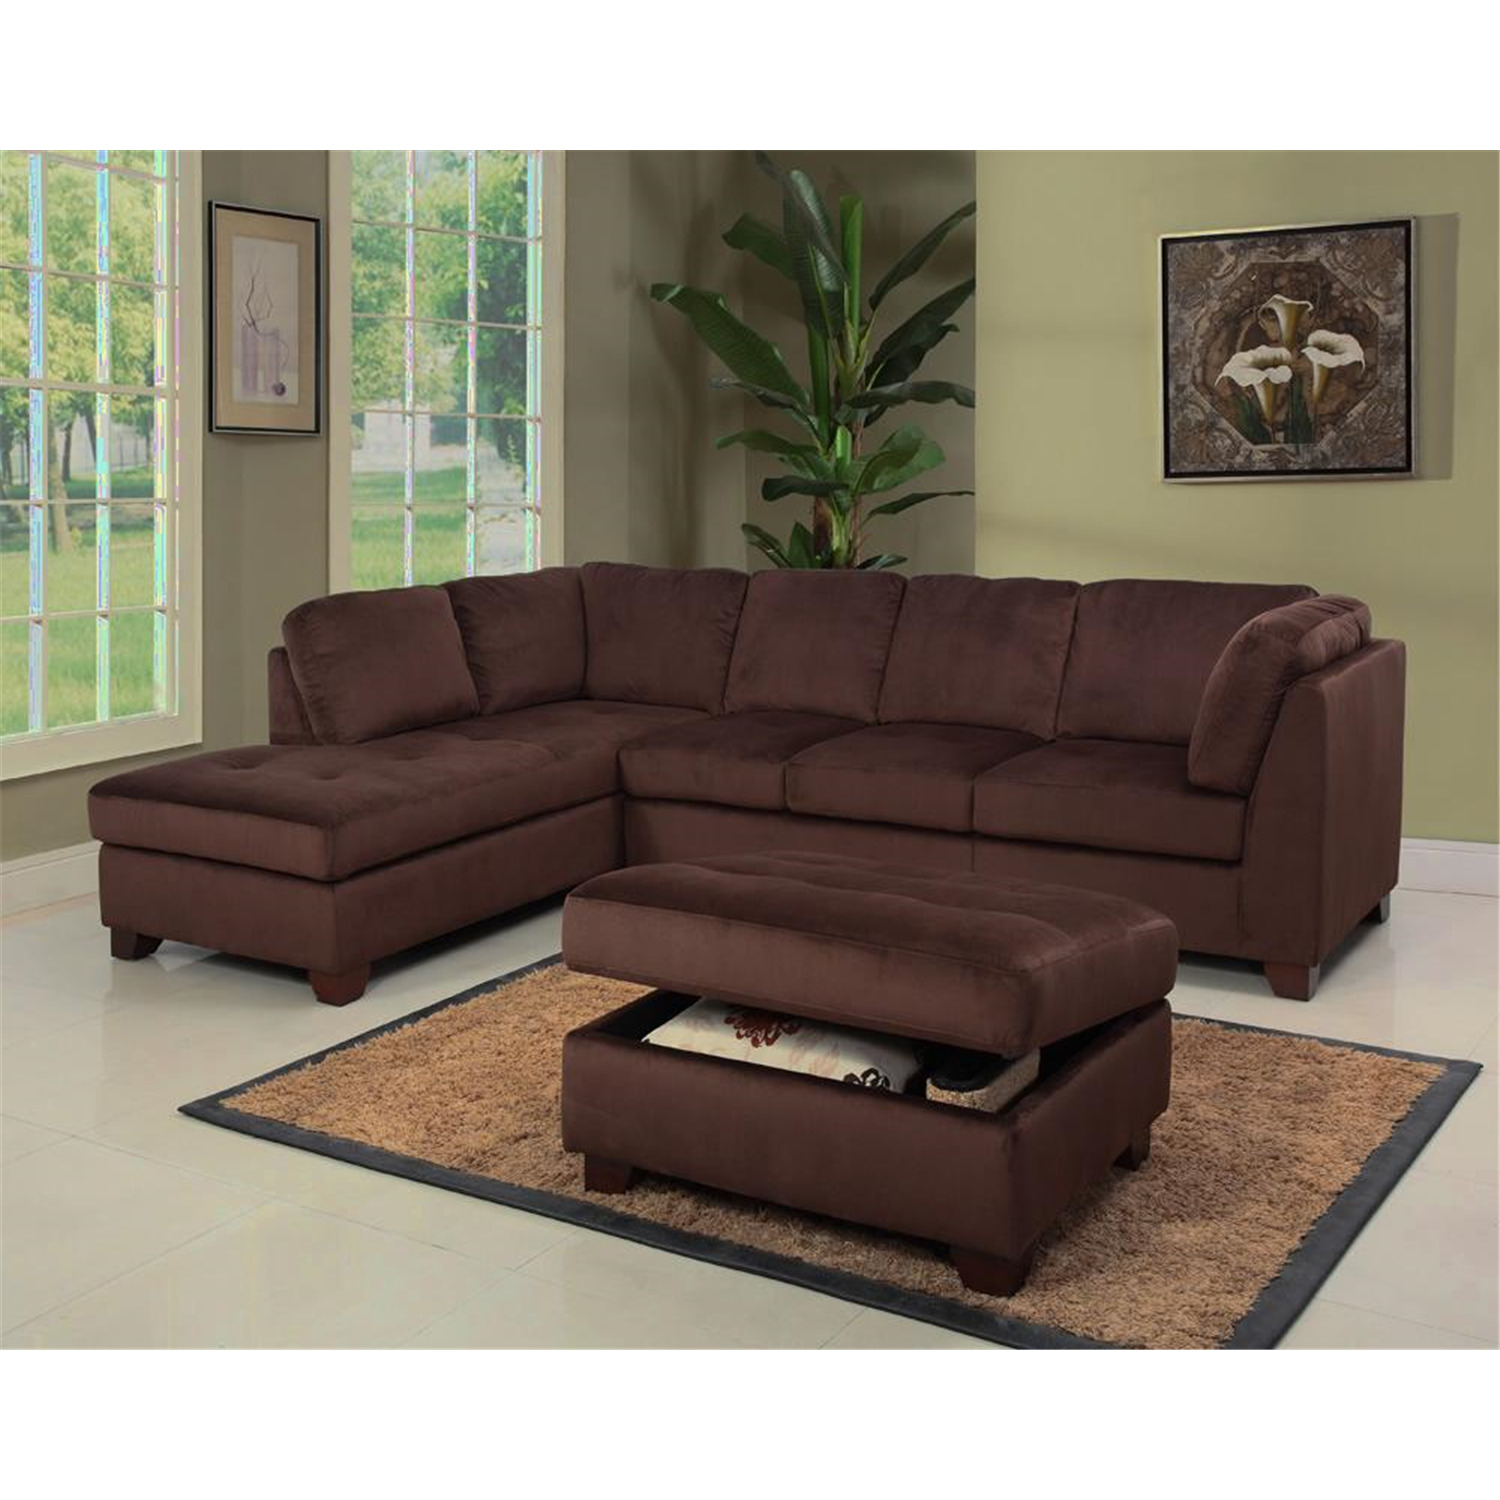 Microsuede sectional sofa and storage ottoman set ojcommerce for Microsuede living room furniture